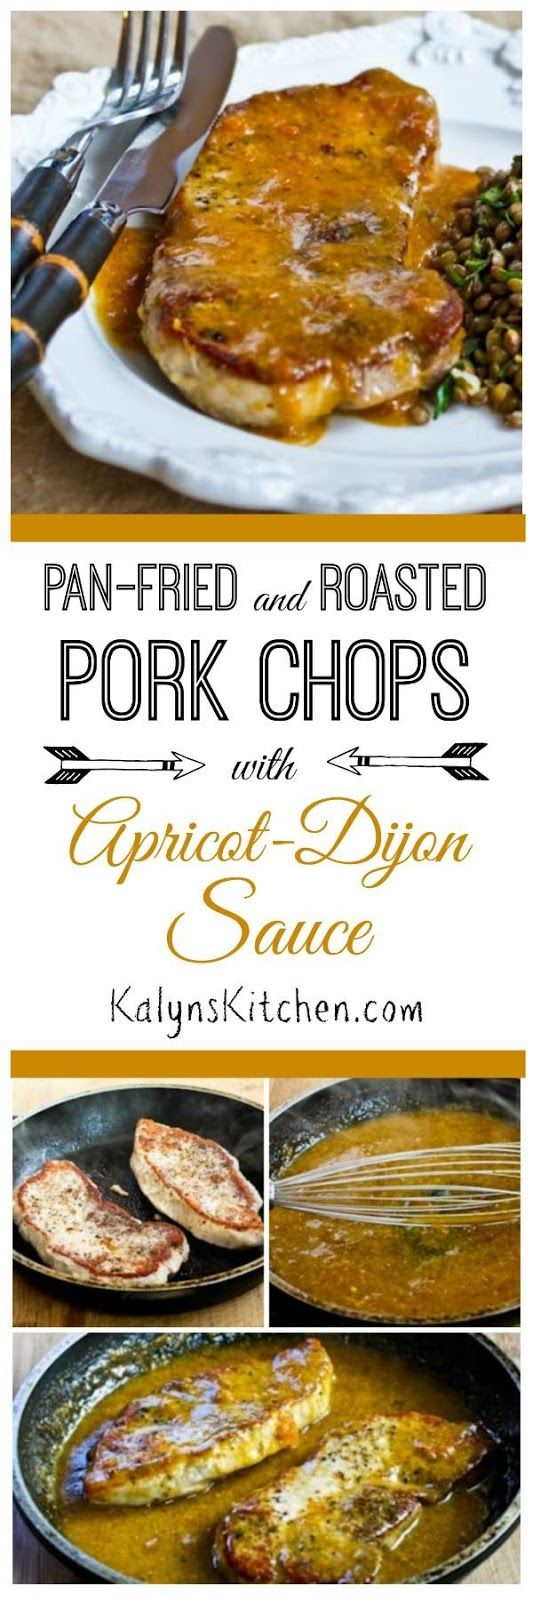 Pan-Fried and Roasted Pork Chops with Apricot-Dijon Sauce found on ...